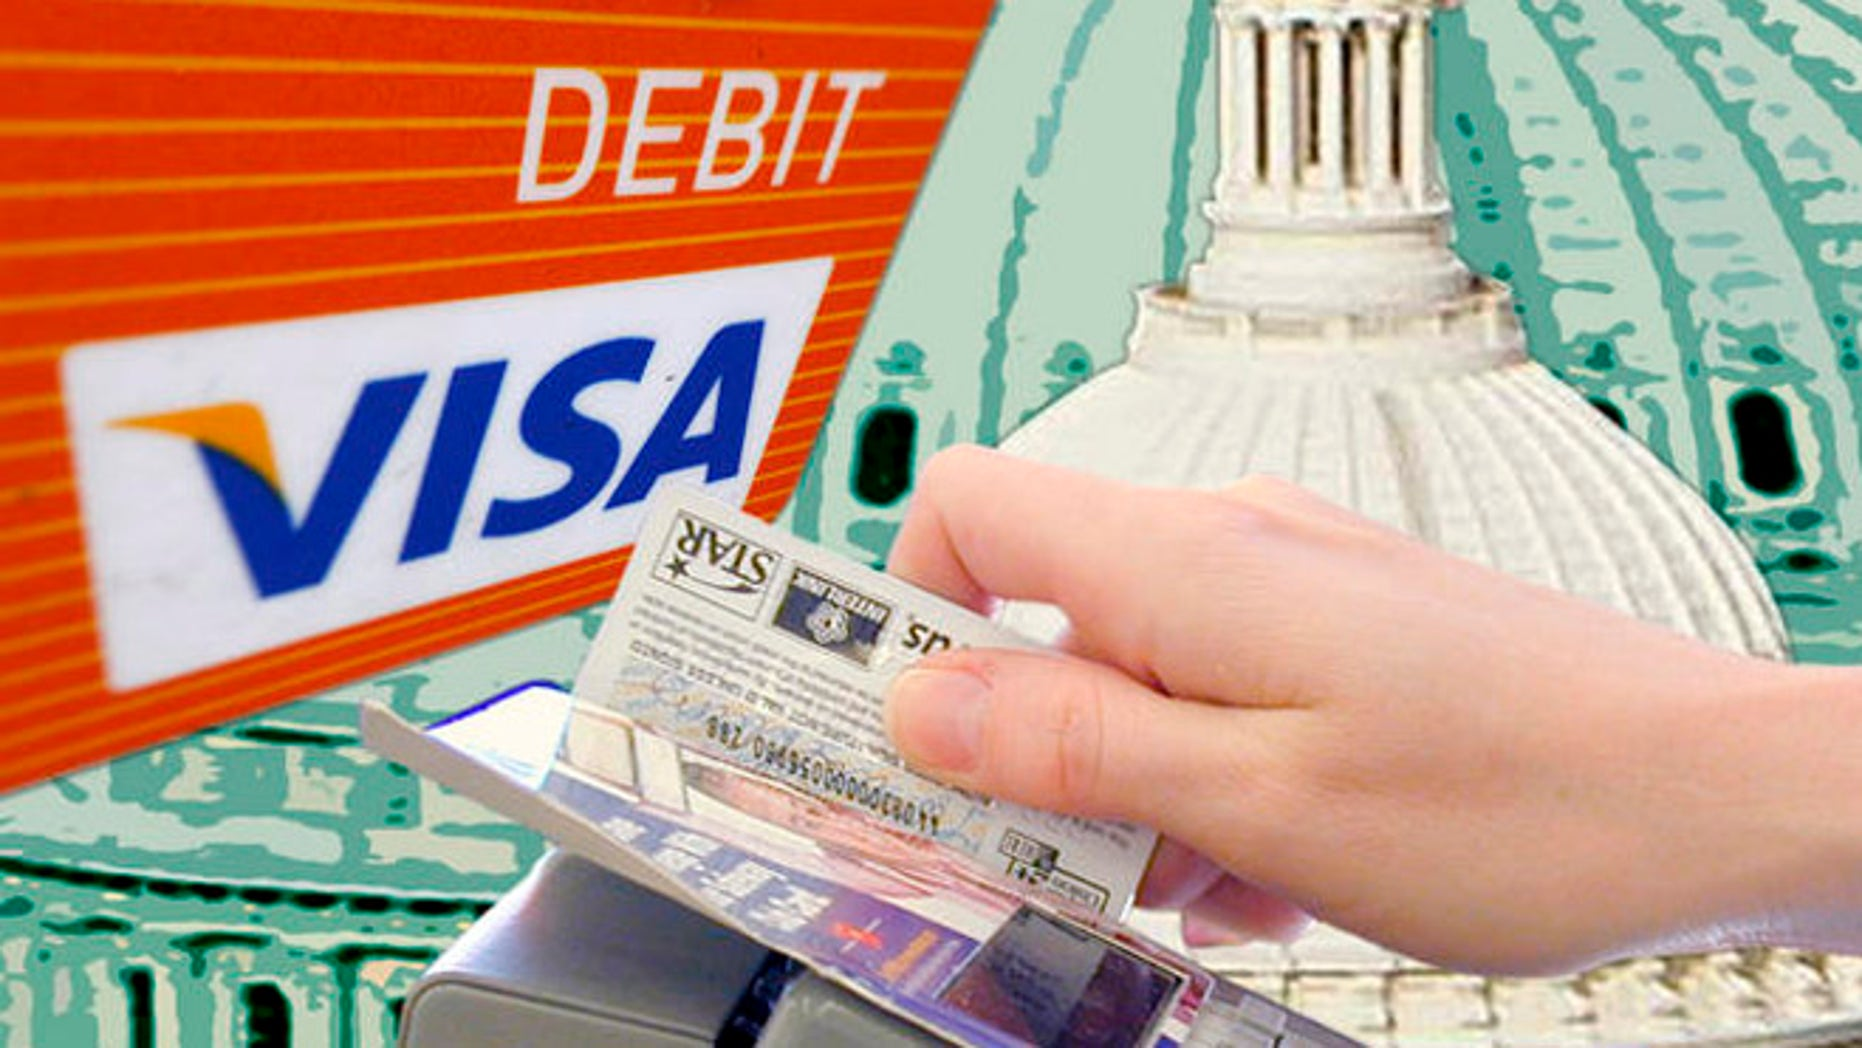 This photo taken Monday, Aug. 16, 2010, shows the Visa logo on the front of a Debit Card in Philadelphia. (AP Photo/Matt Rourke)